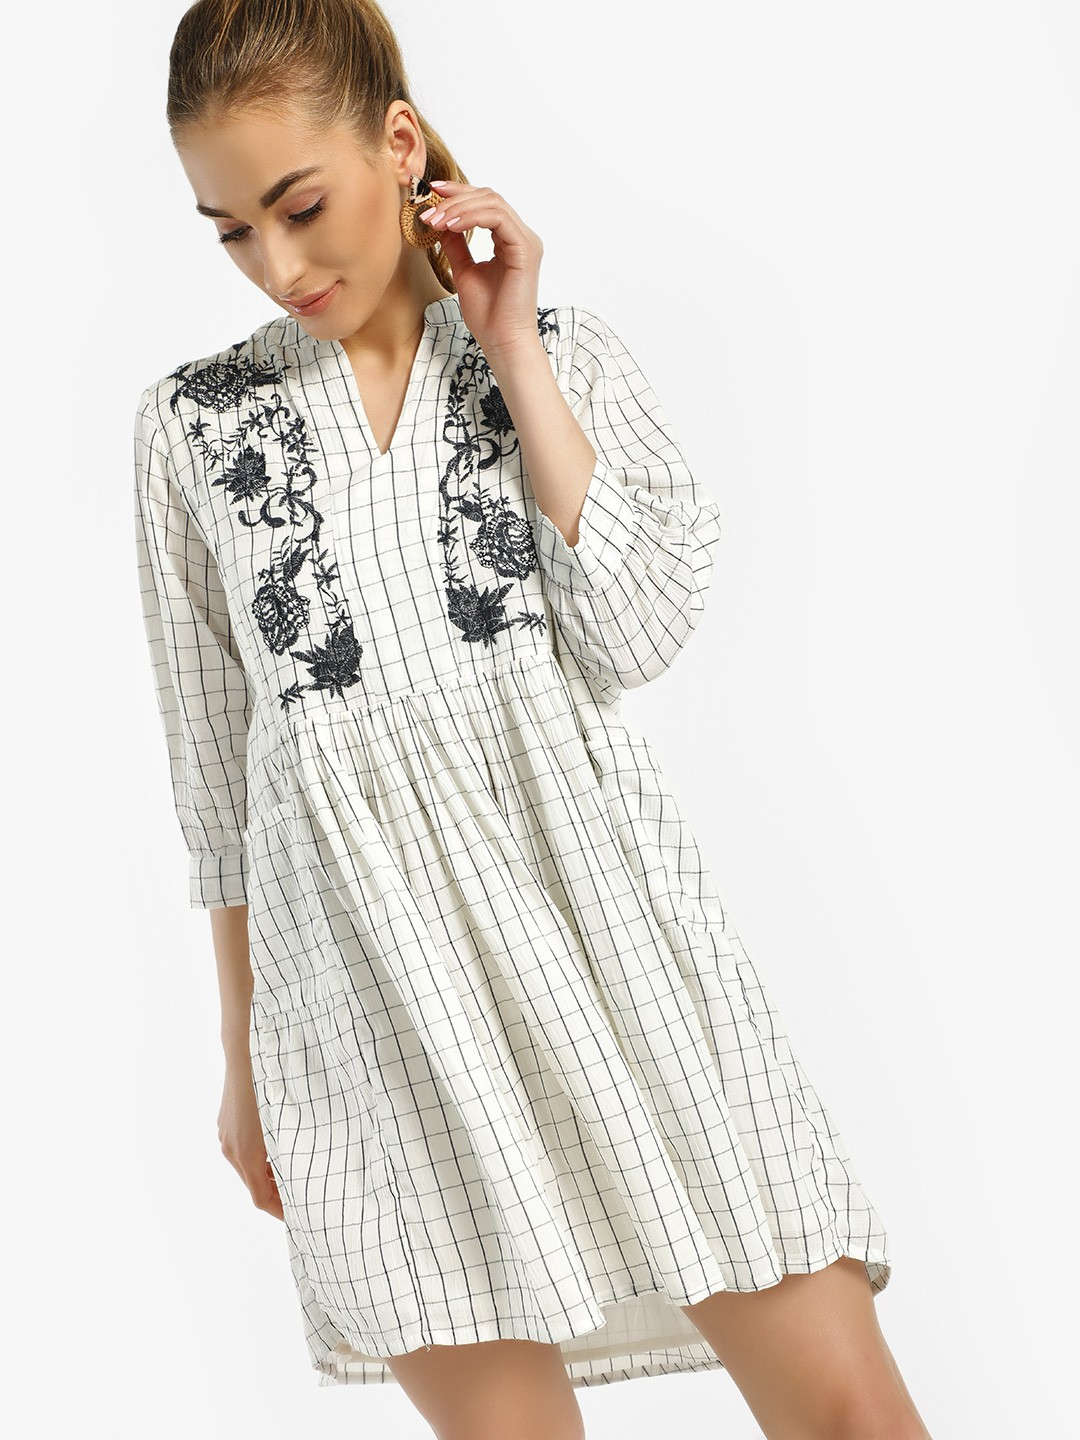 Rena Love White Grid Check Yoke Embroidered Shift Dress 1